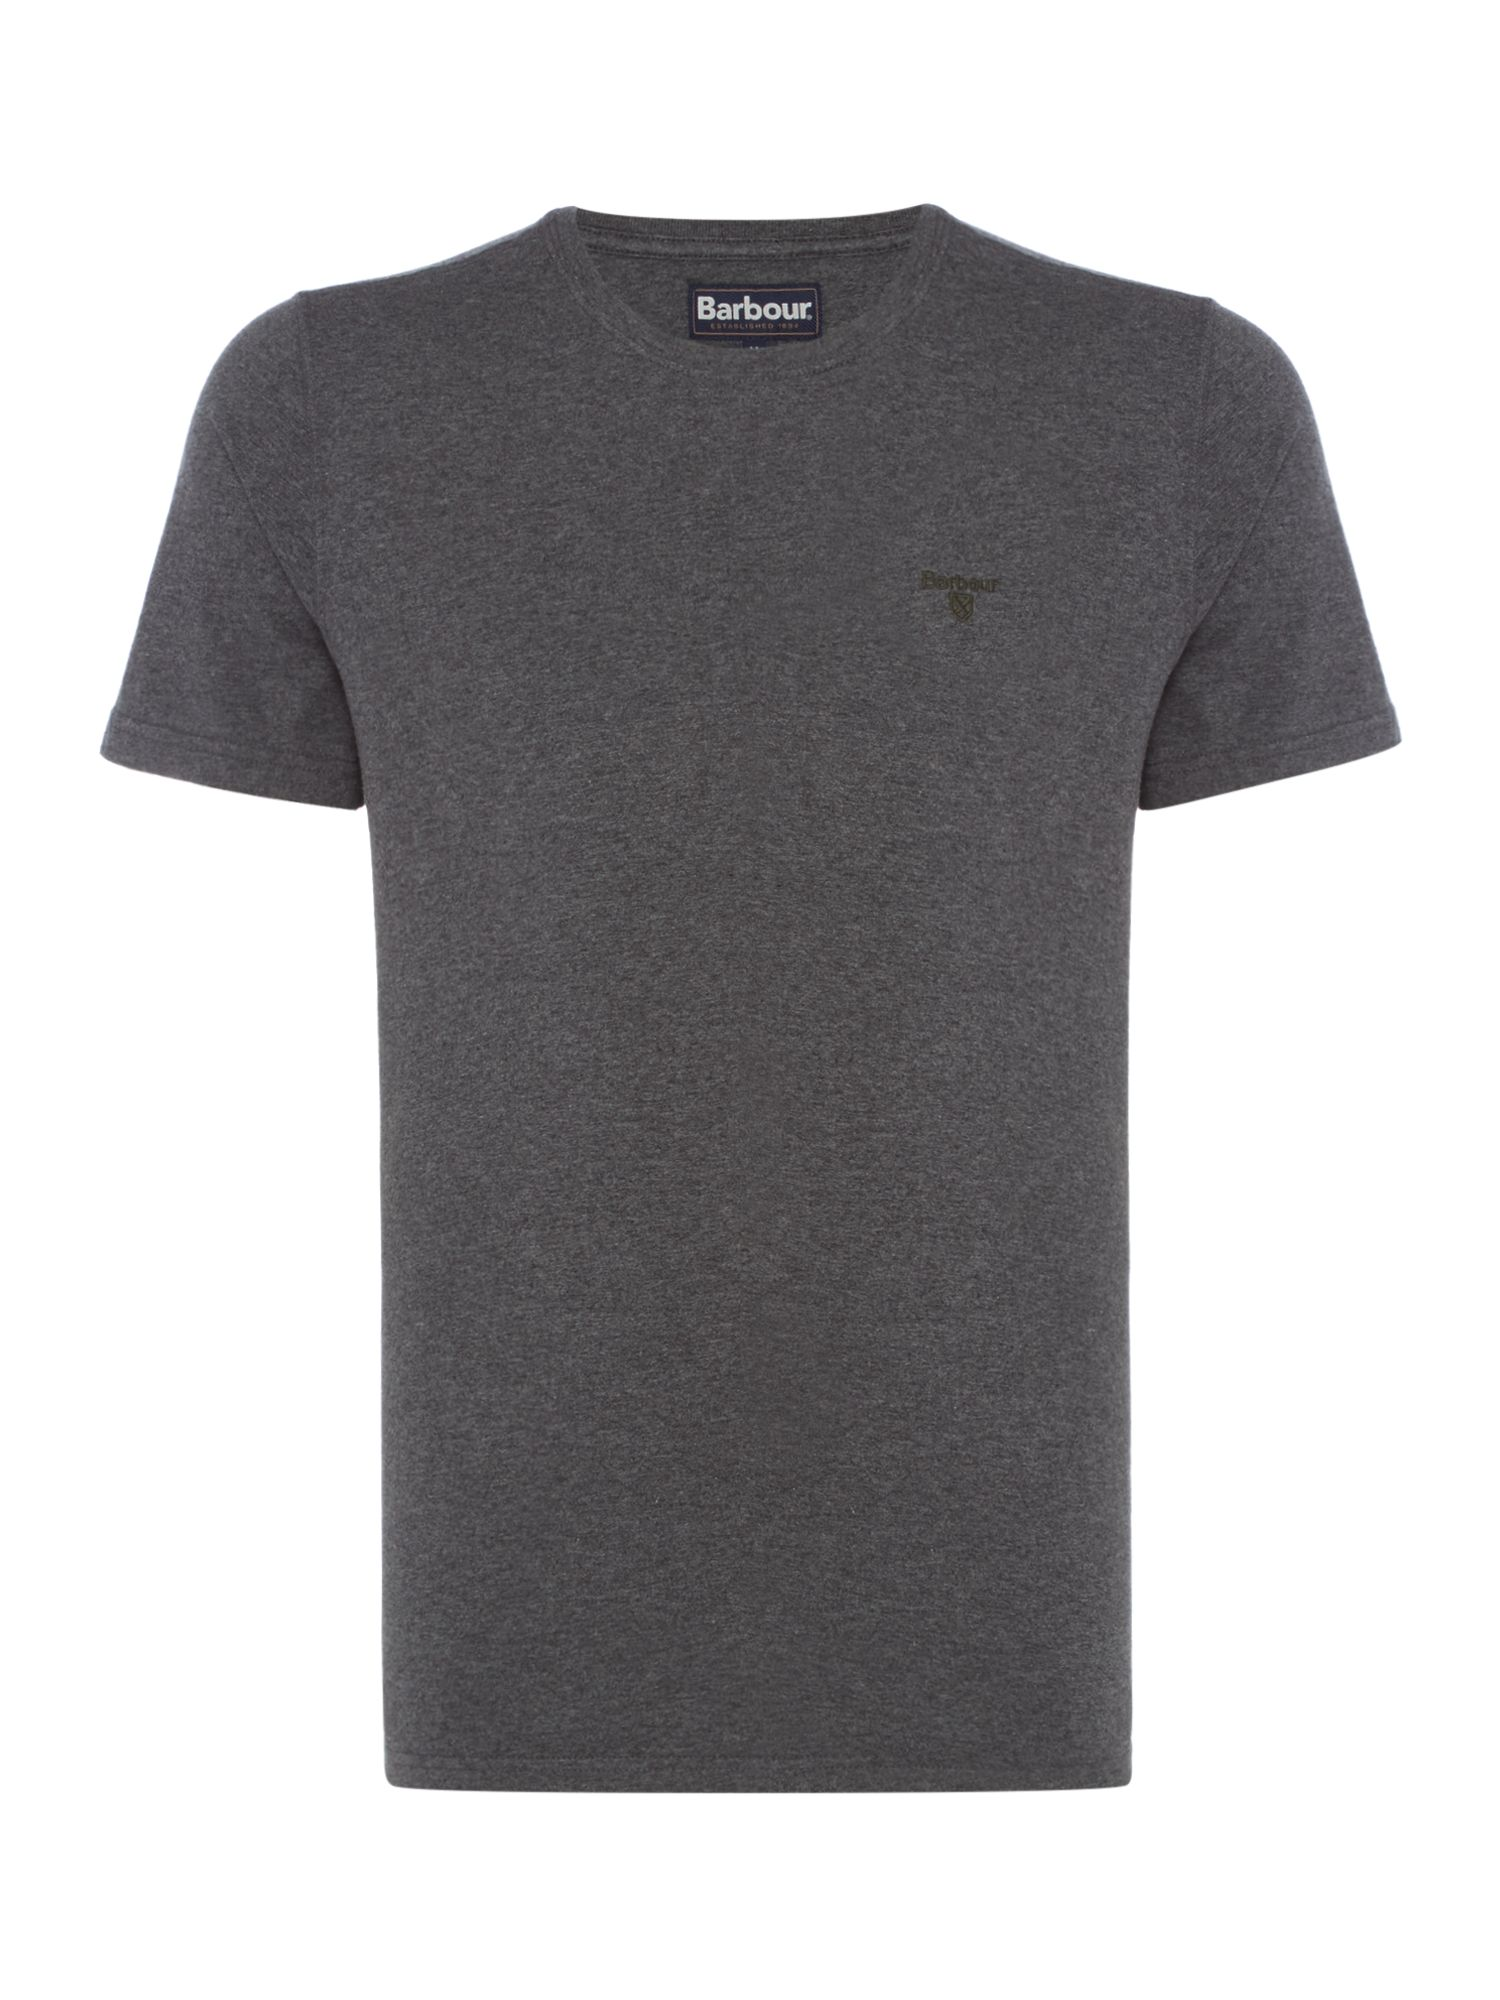 Men's Barbour Short sleeve sports tee, Slate